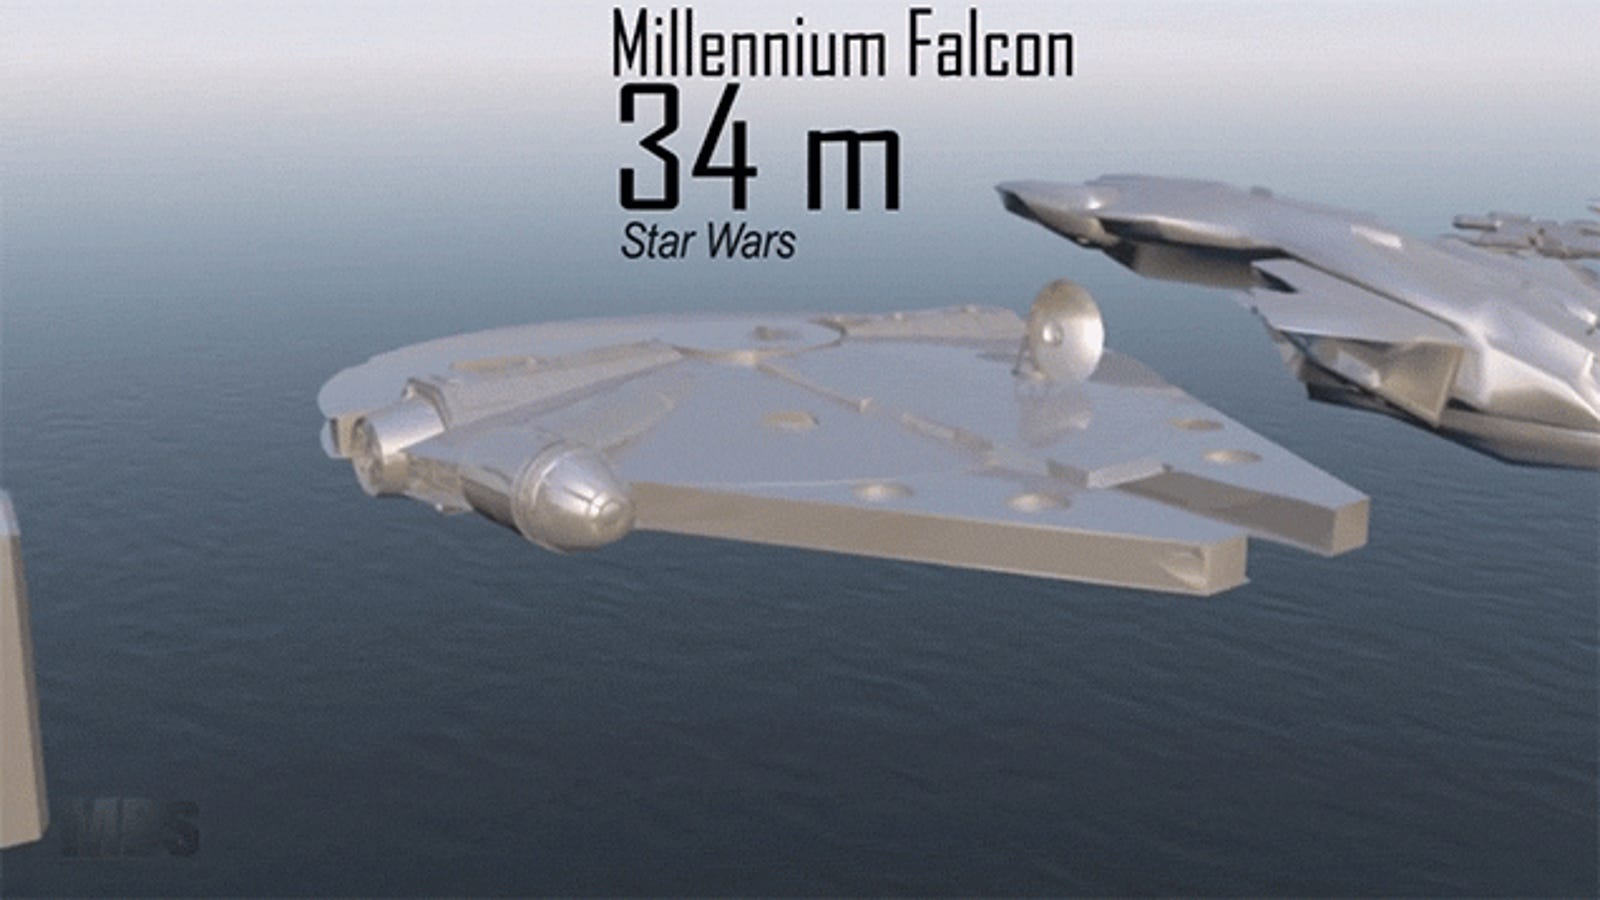 Neat size comparison video compares the size of spaceships from different movies